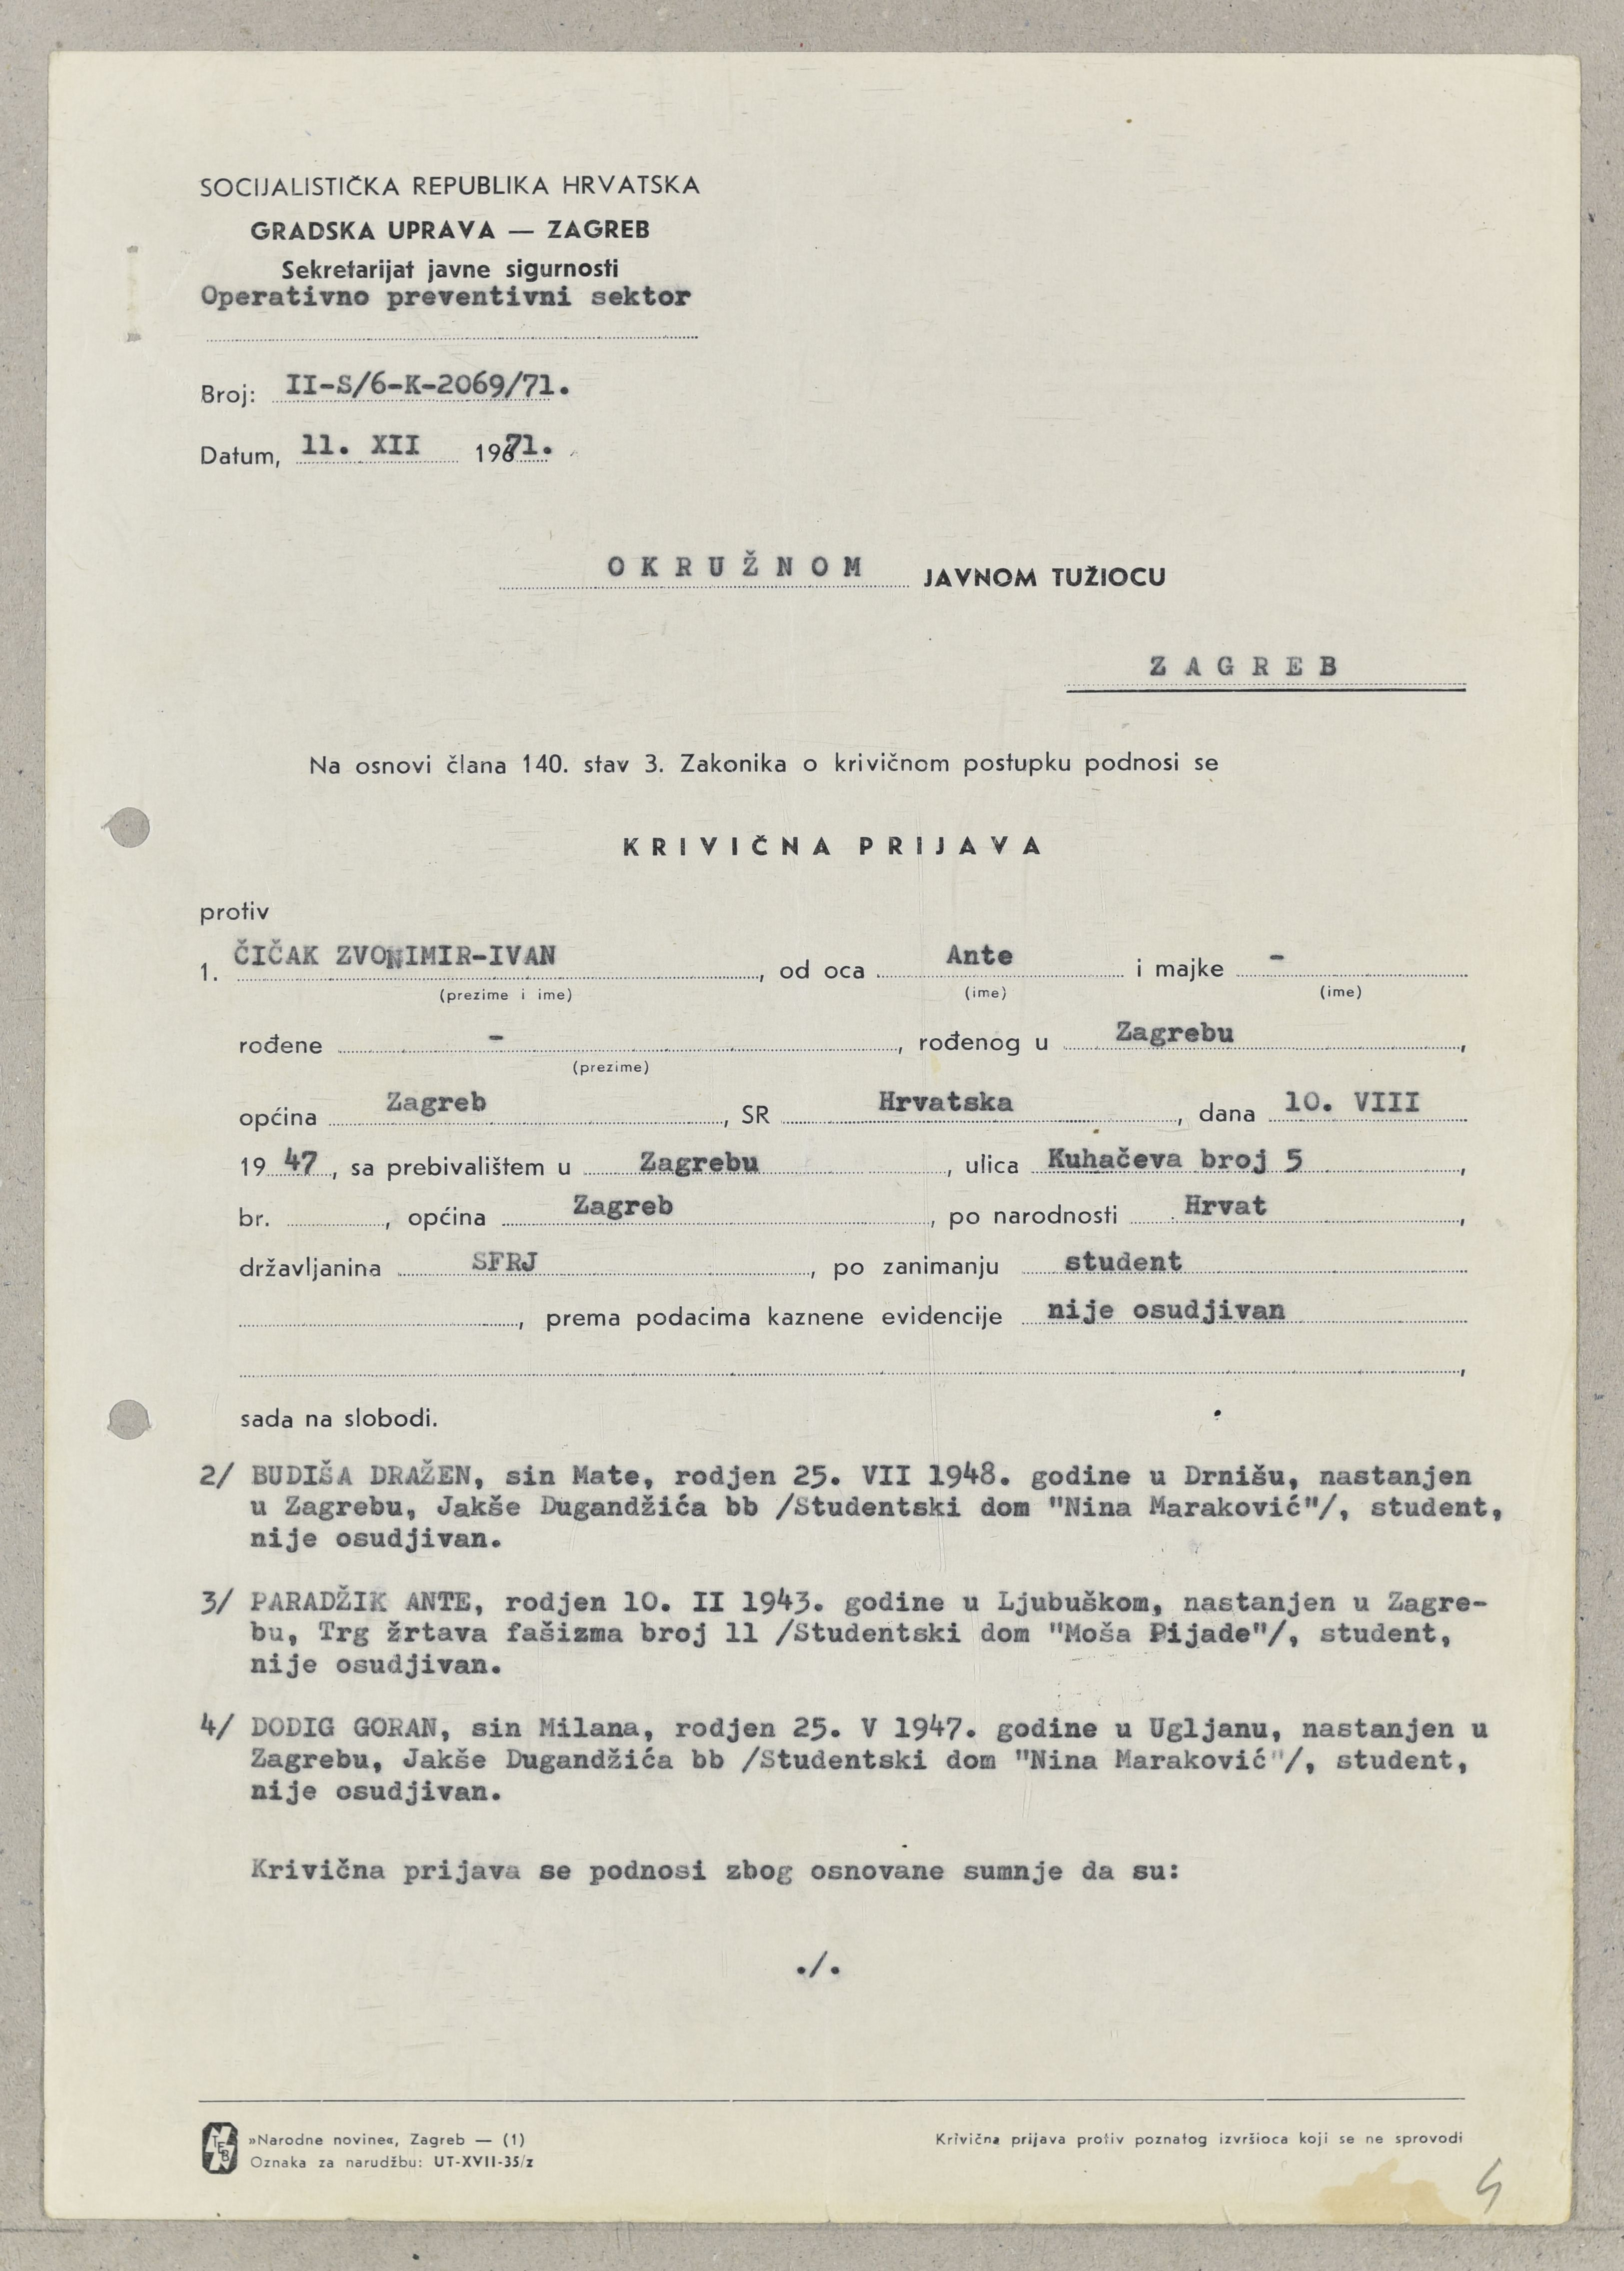 Copy of a criminal indictment against student leaders. 11 December 1971. Archival document